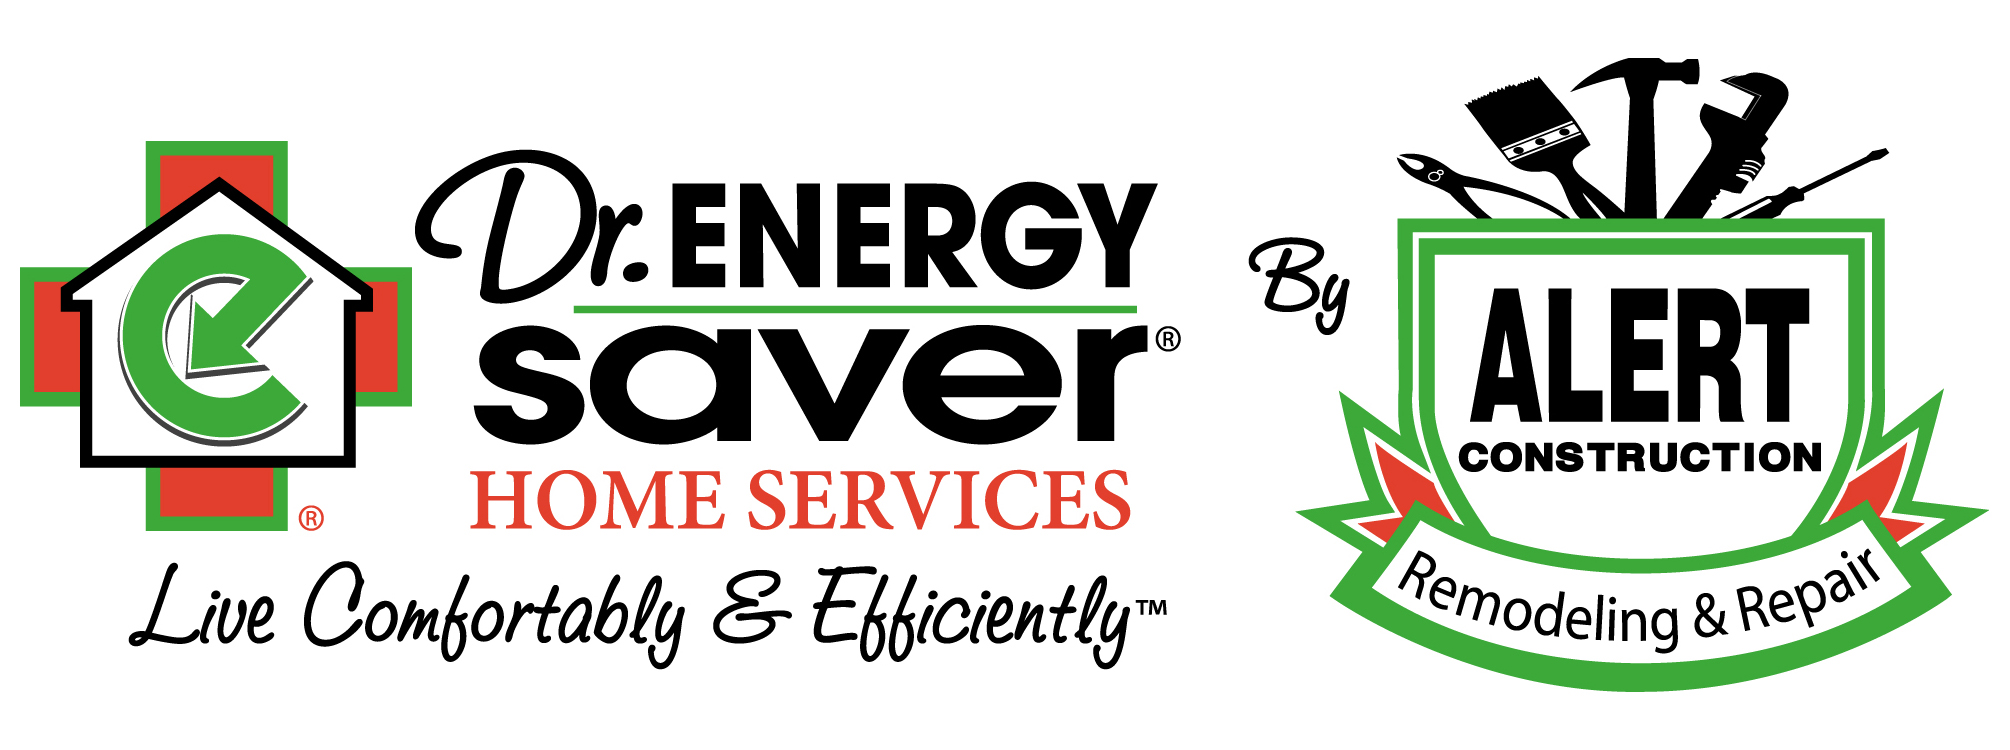 DR. ENERGY SAVER BY ALERT CONSTRUCTION